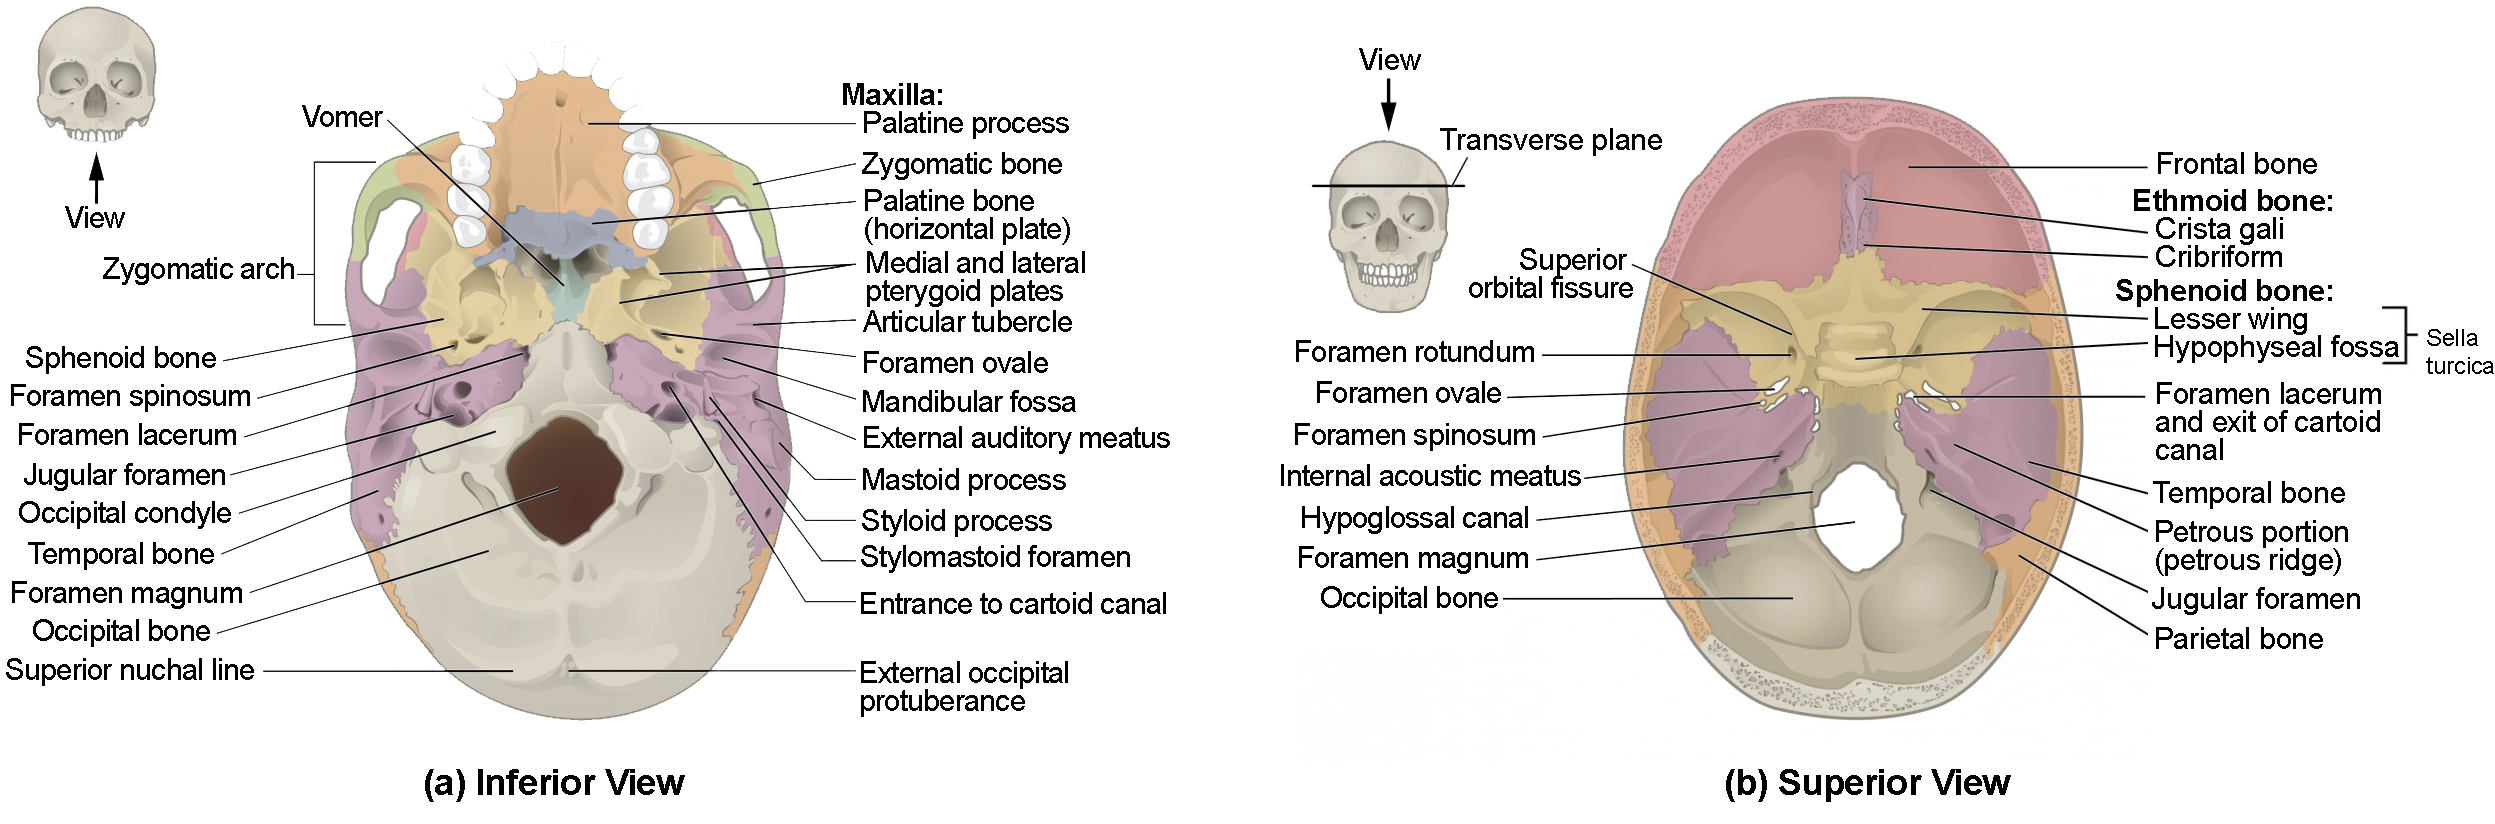 diagram of skull superior view anatomy ukulele songs with chord diagrams the and physiology i